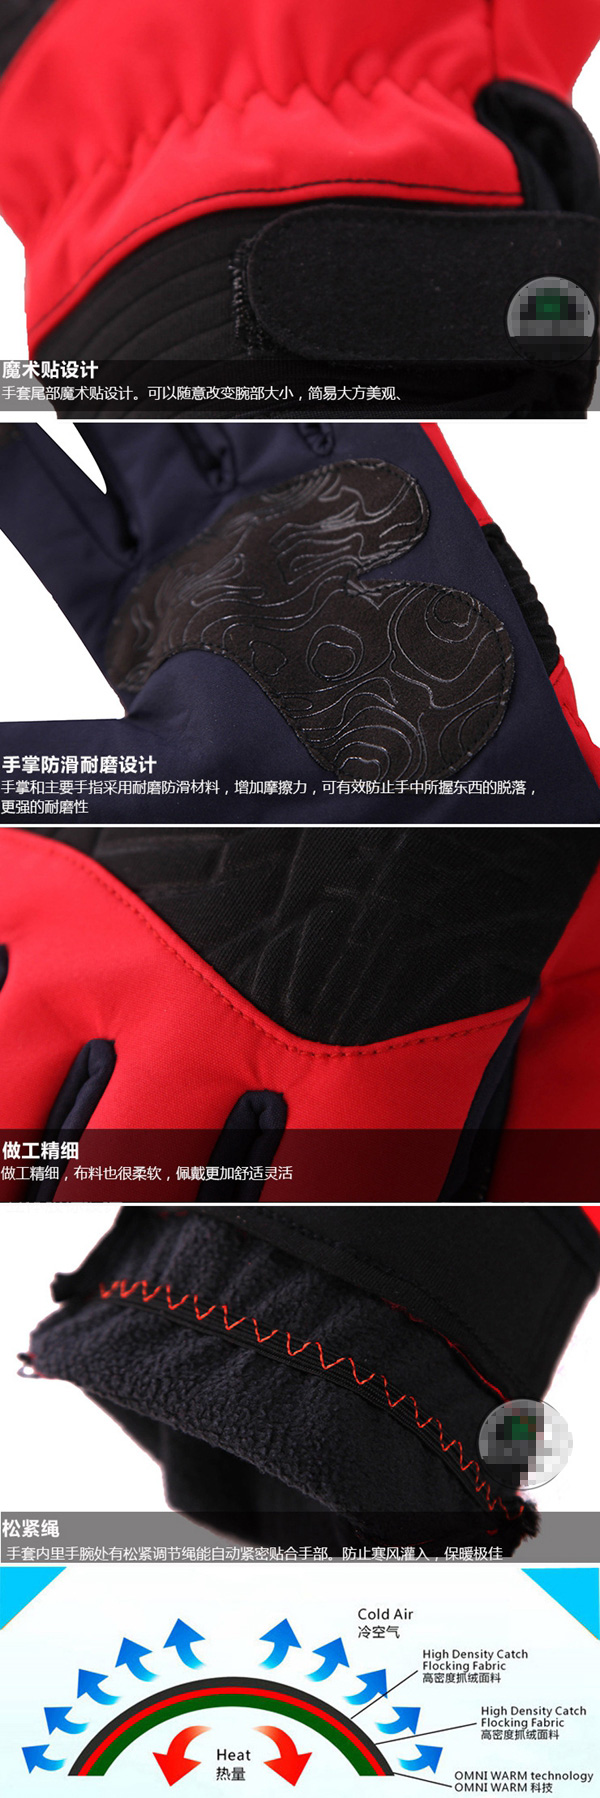 windproof-breathable-warm-hiking-riding-climbing-gloves-details-02